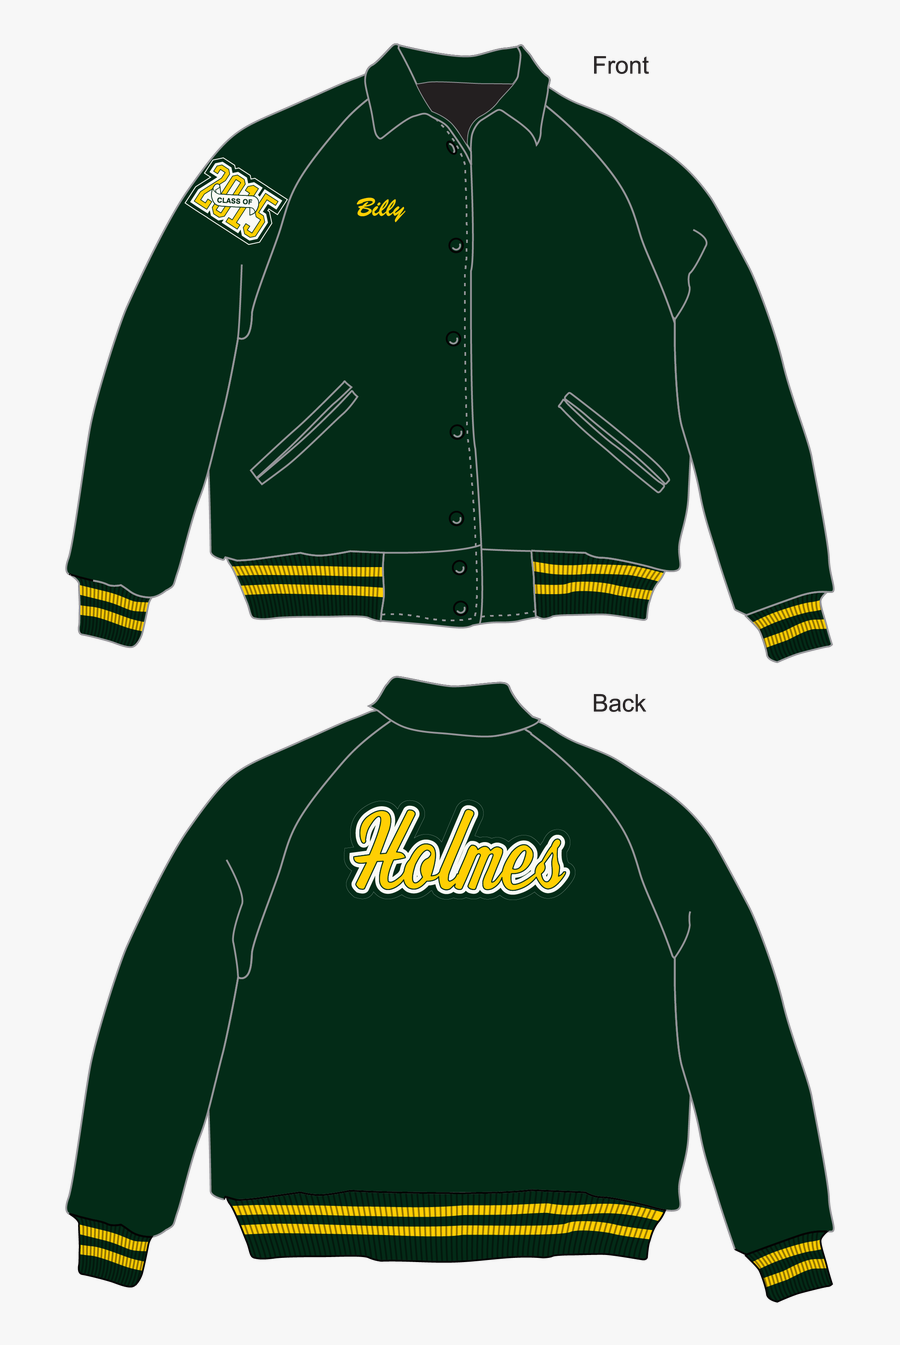 Holmes High School Letter Jacket - Sweater, Transparent Clipart